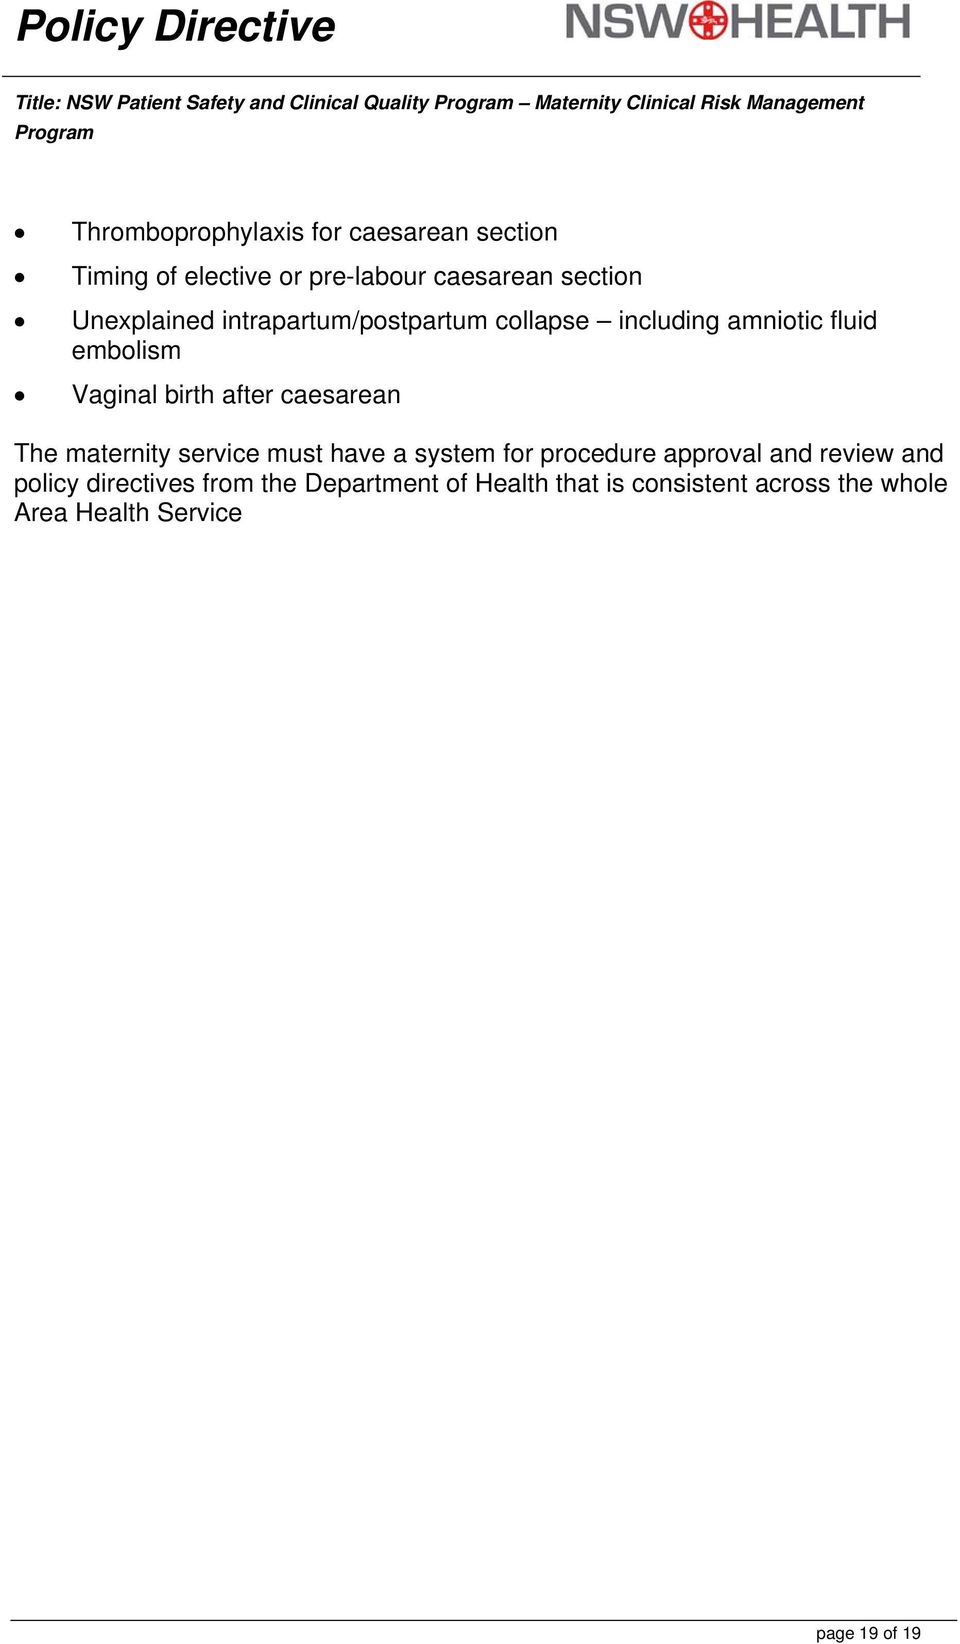 amniotic fluid embolism Vaginal birth after caesarean The maternity service must have a system for procedure approval